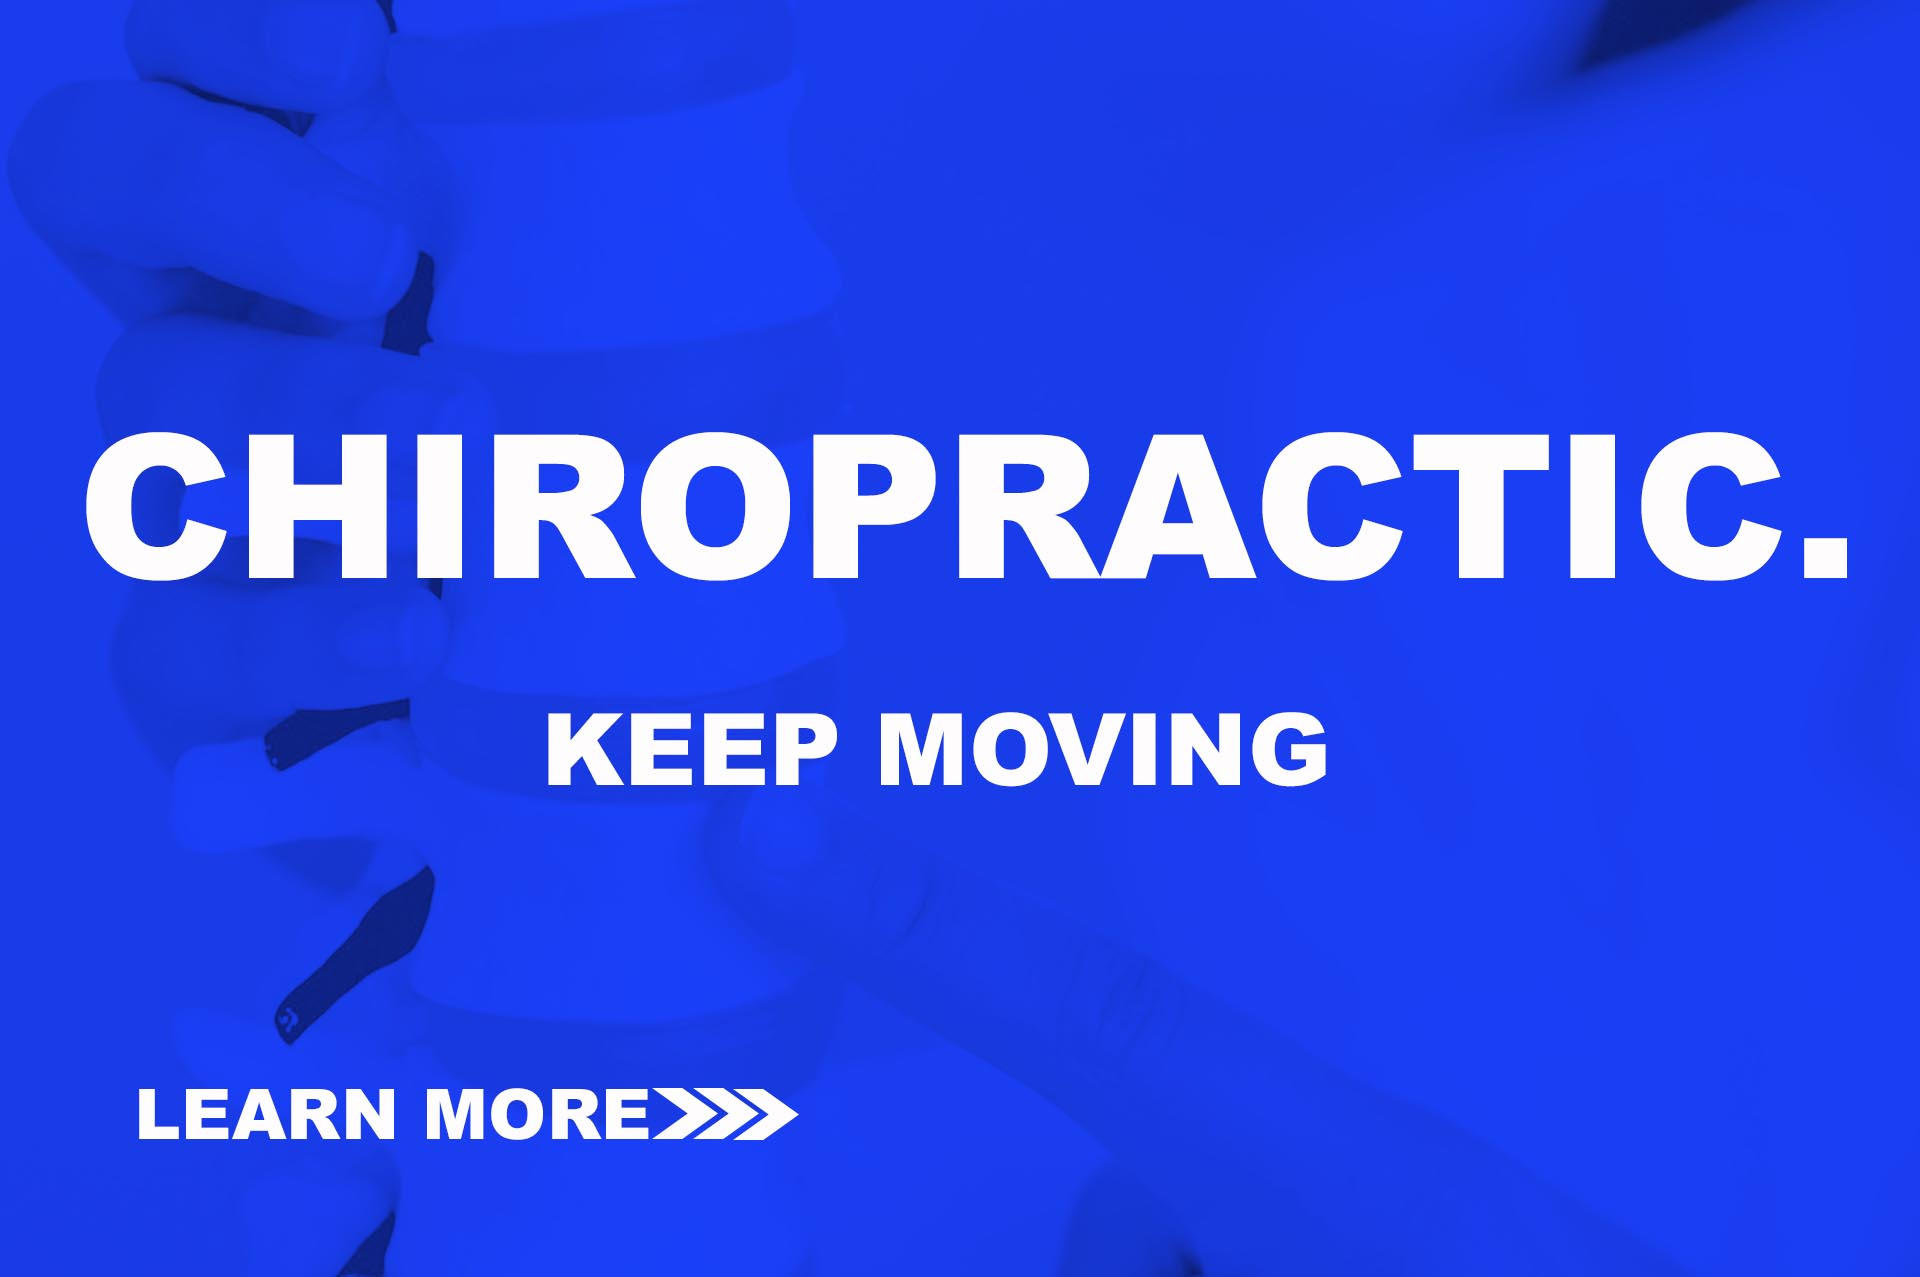 CHIROPRACTICBOX